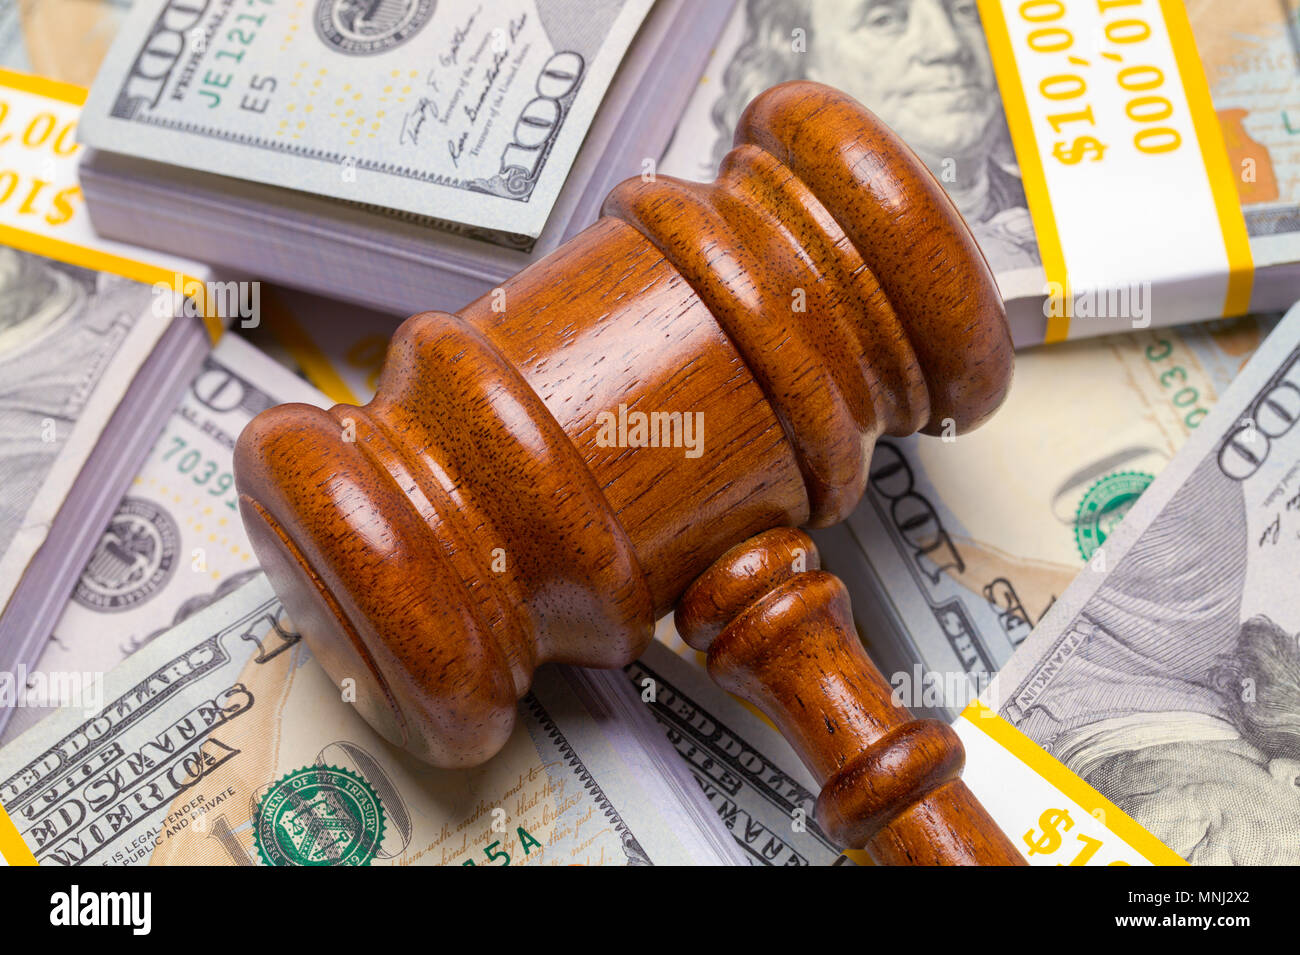 Pile of Hundred Dollar Bills with Judges Gavel on Top. - Stock Image